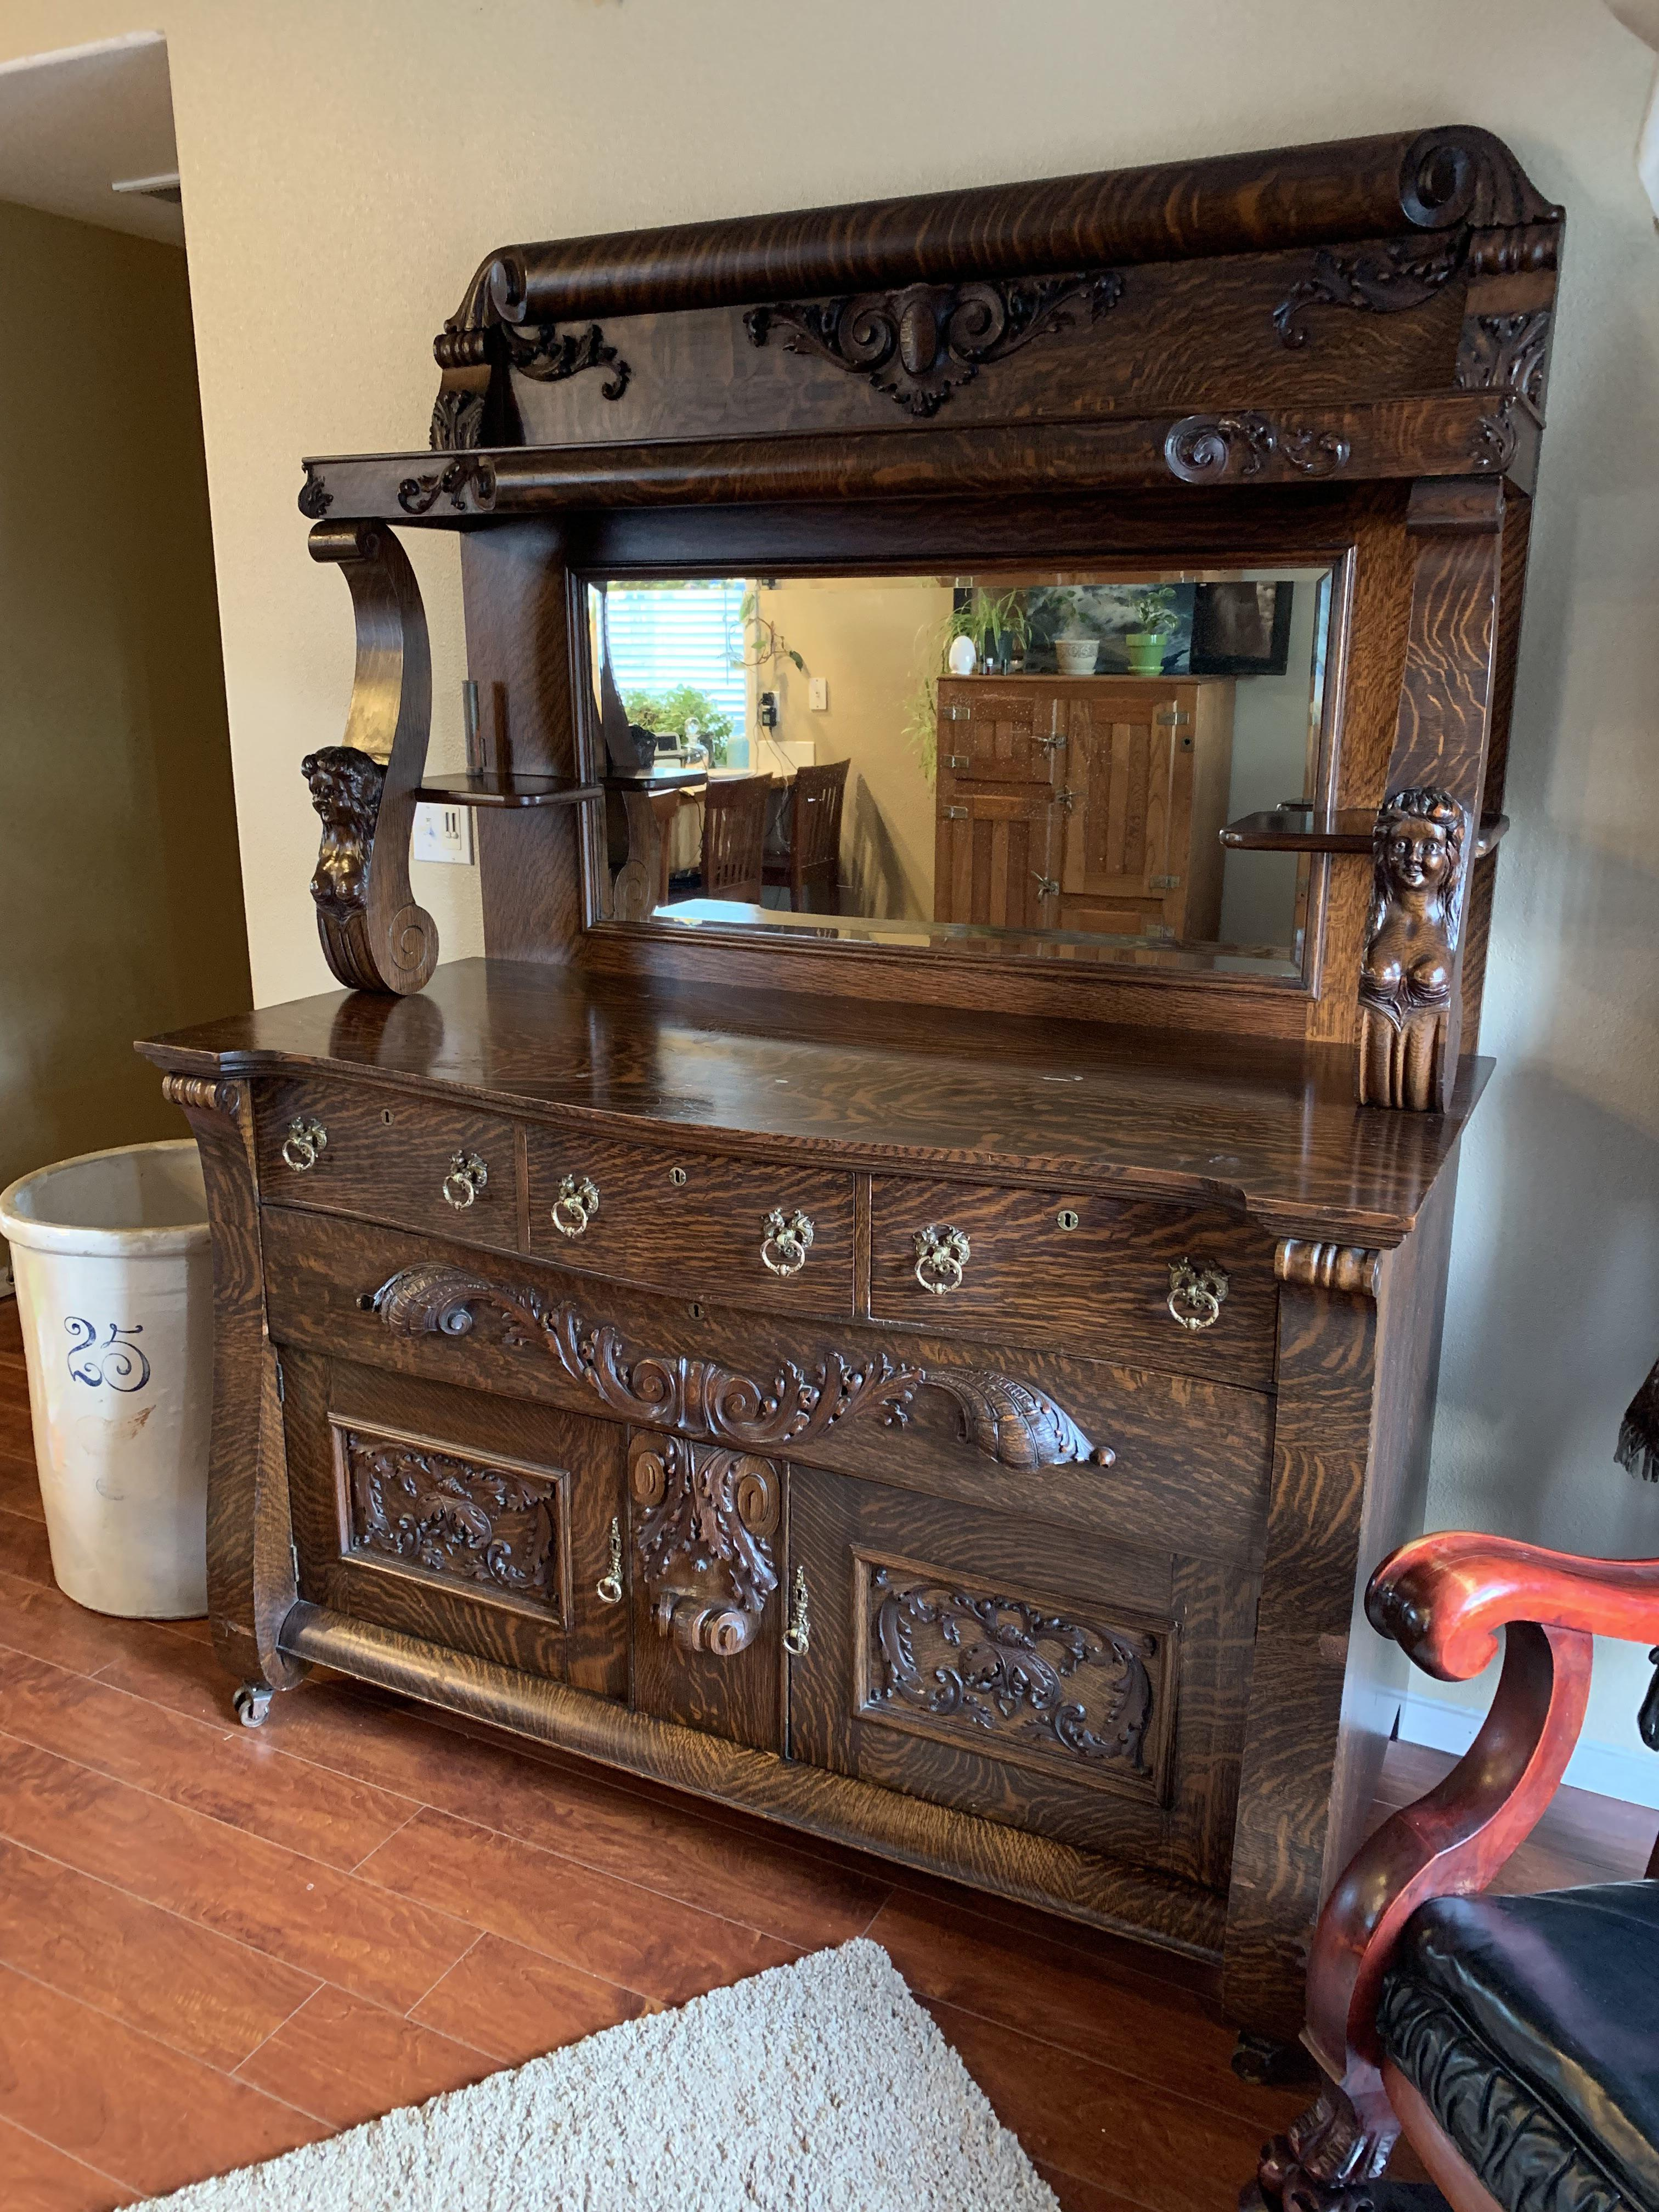 Antique Sideboard Buffet Has Been In My Family For A Long Time Thought You All Would Appreciate This I Do Not Know Much Of The History Any Information Is Greatly Appreciated